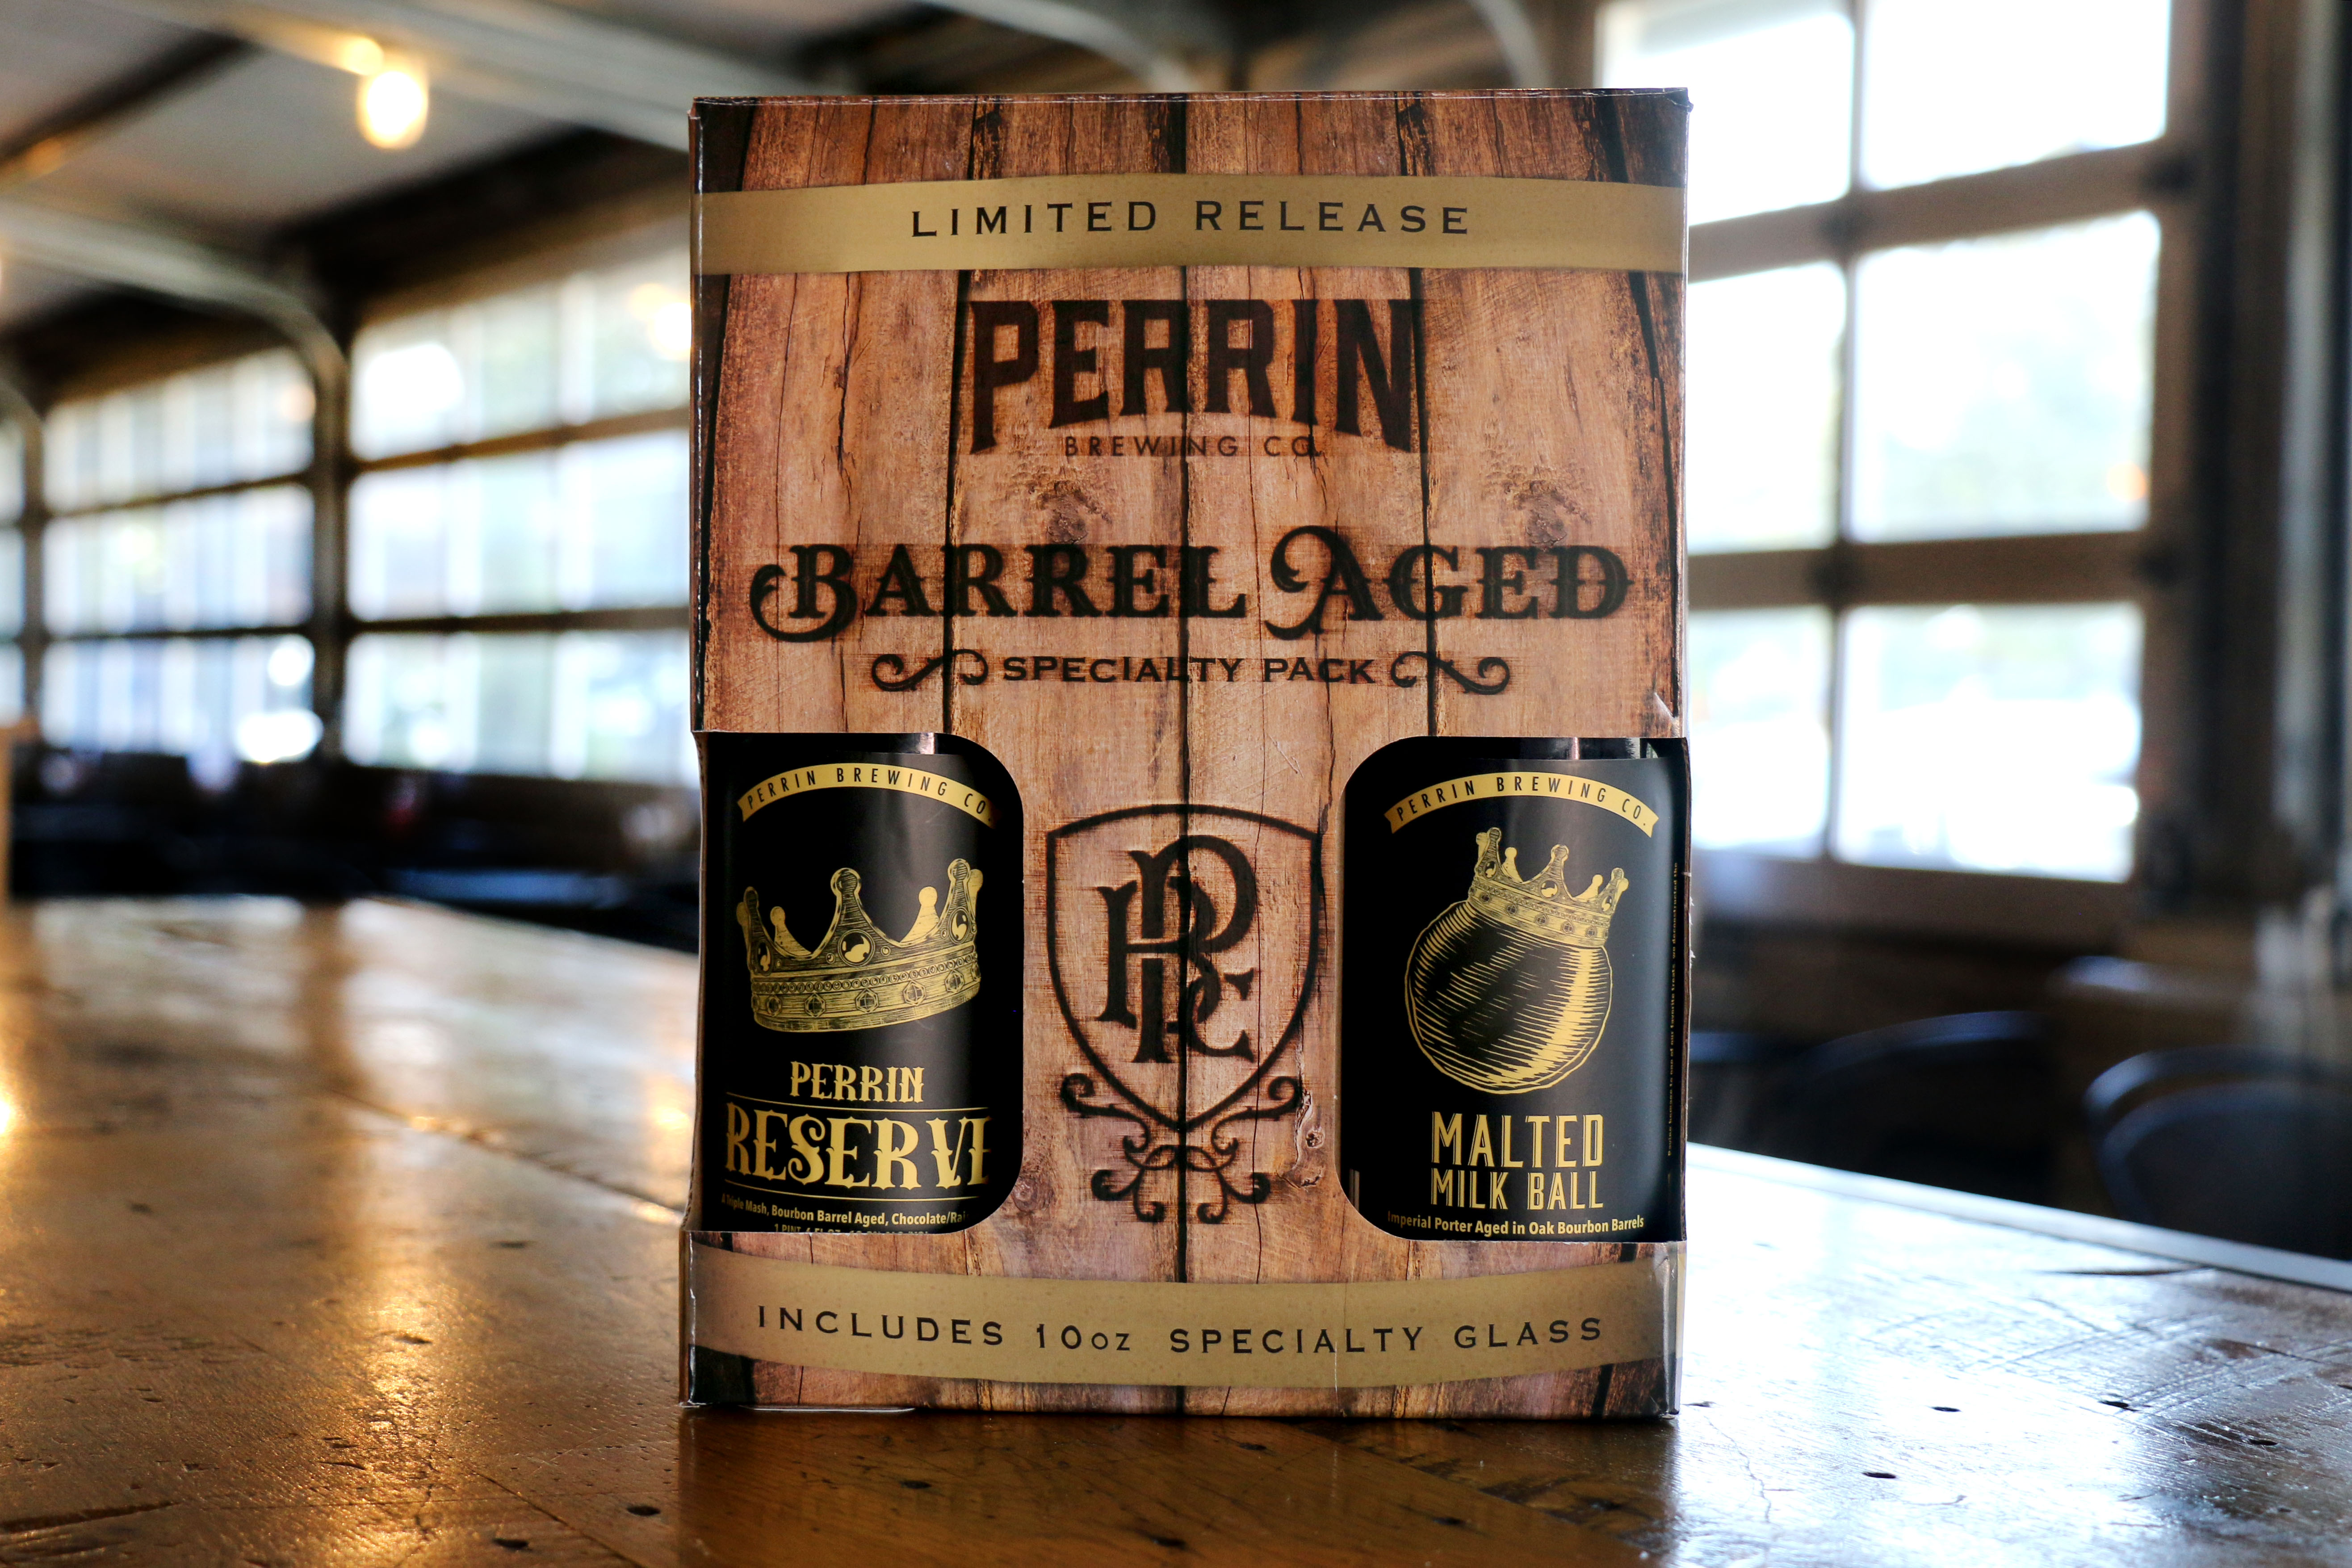 BarrelAged2BottlePack.jpg